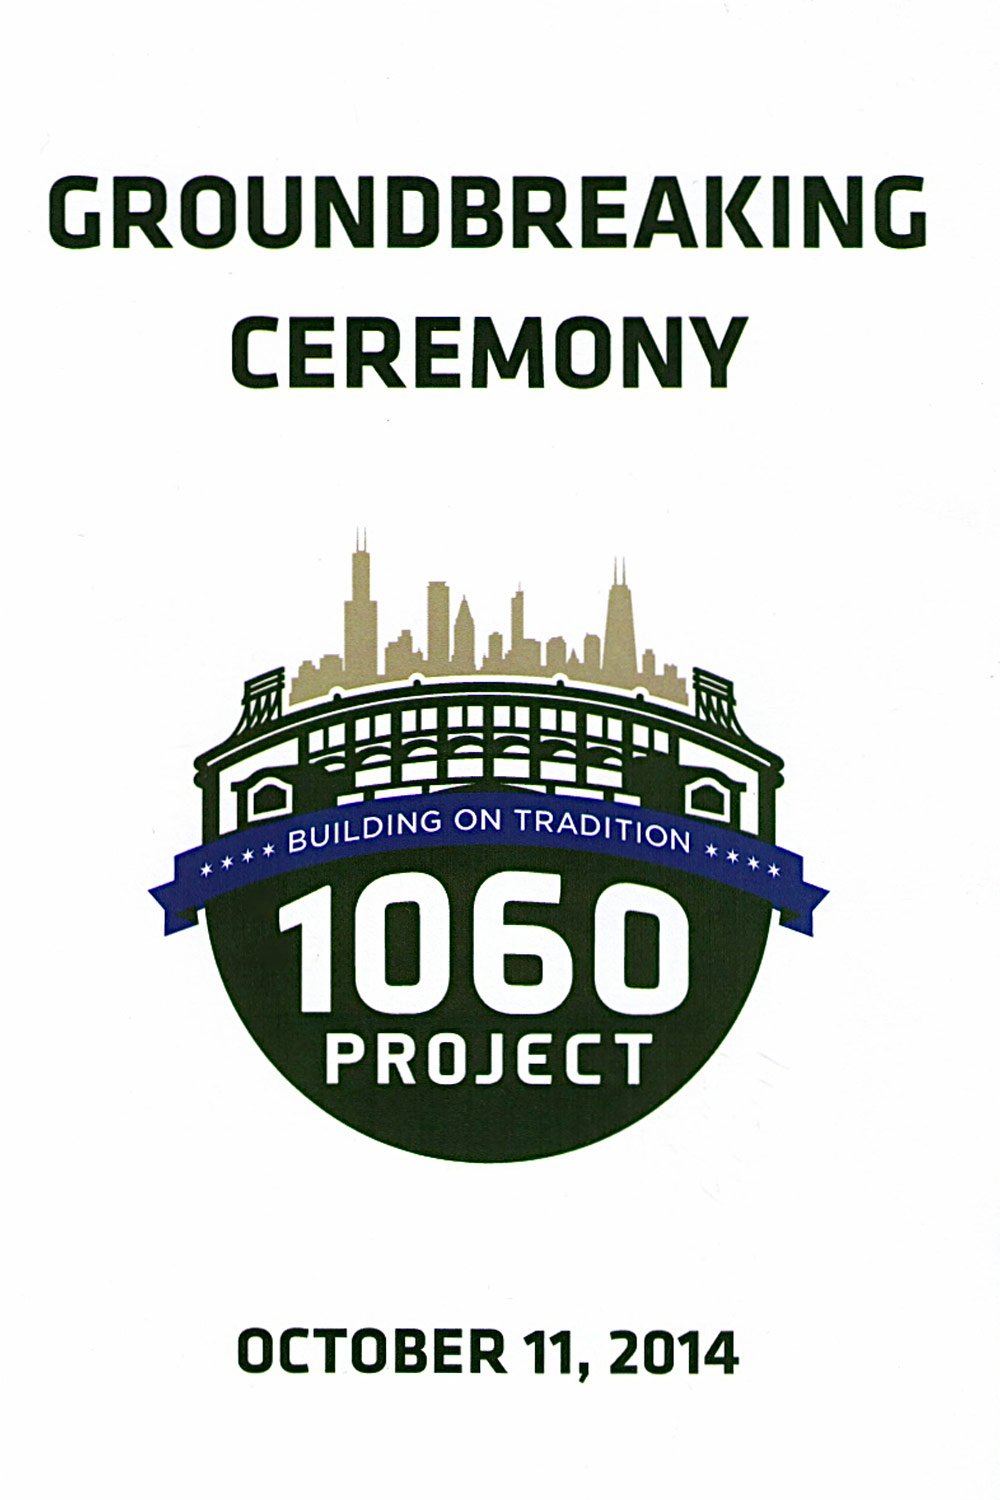 1060 Project